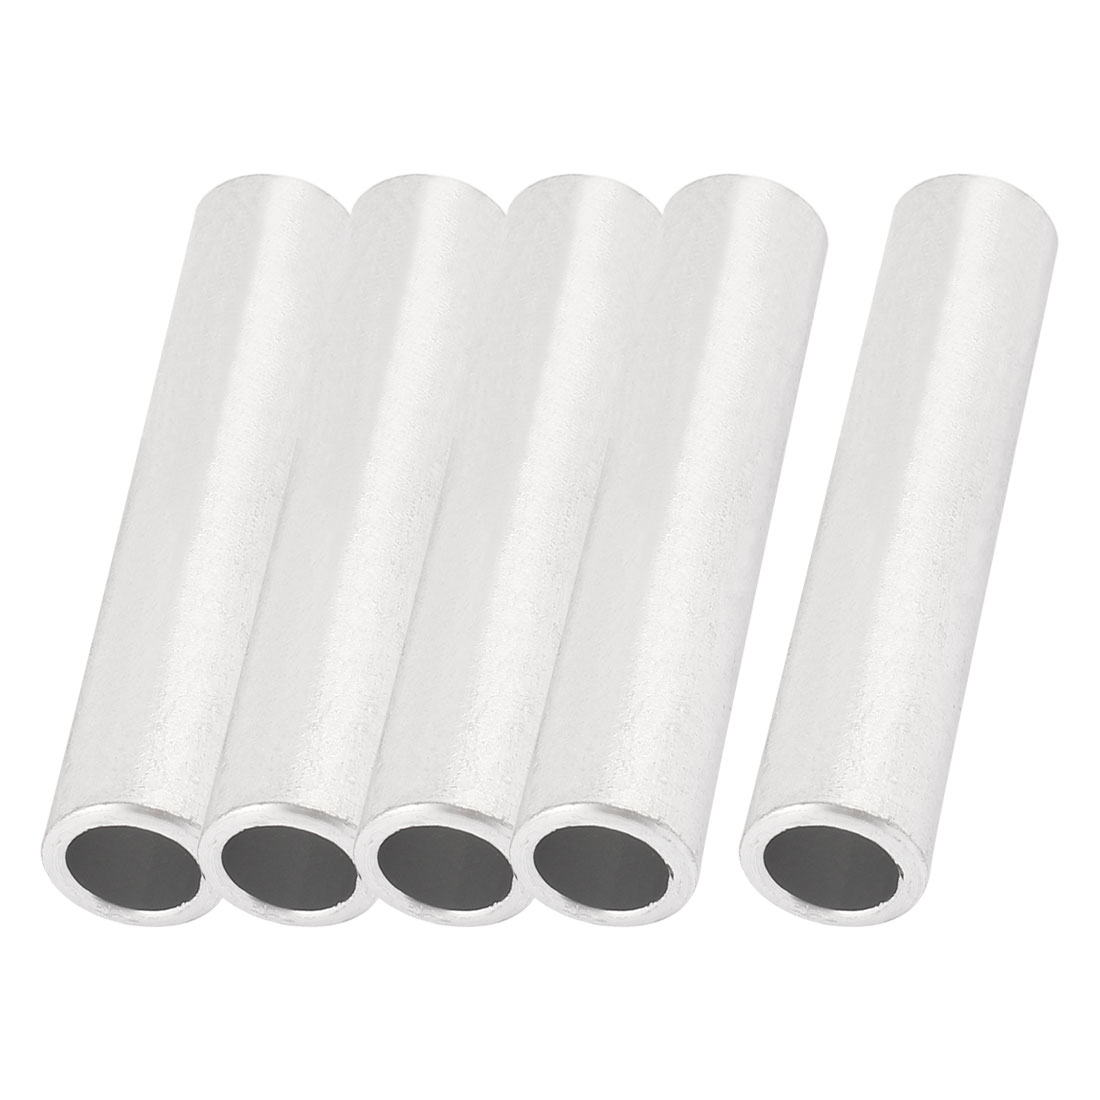 5 Pcs 12mm Inner Dia Straight Passing Through Aluminum Connecting Tube